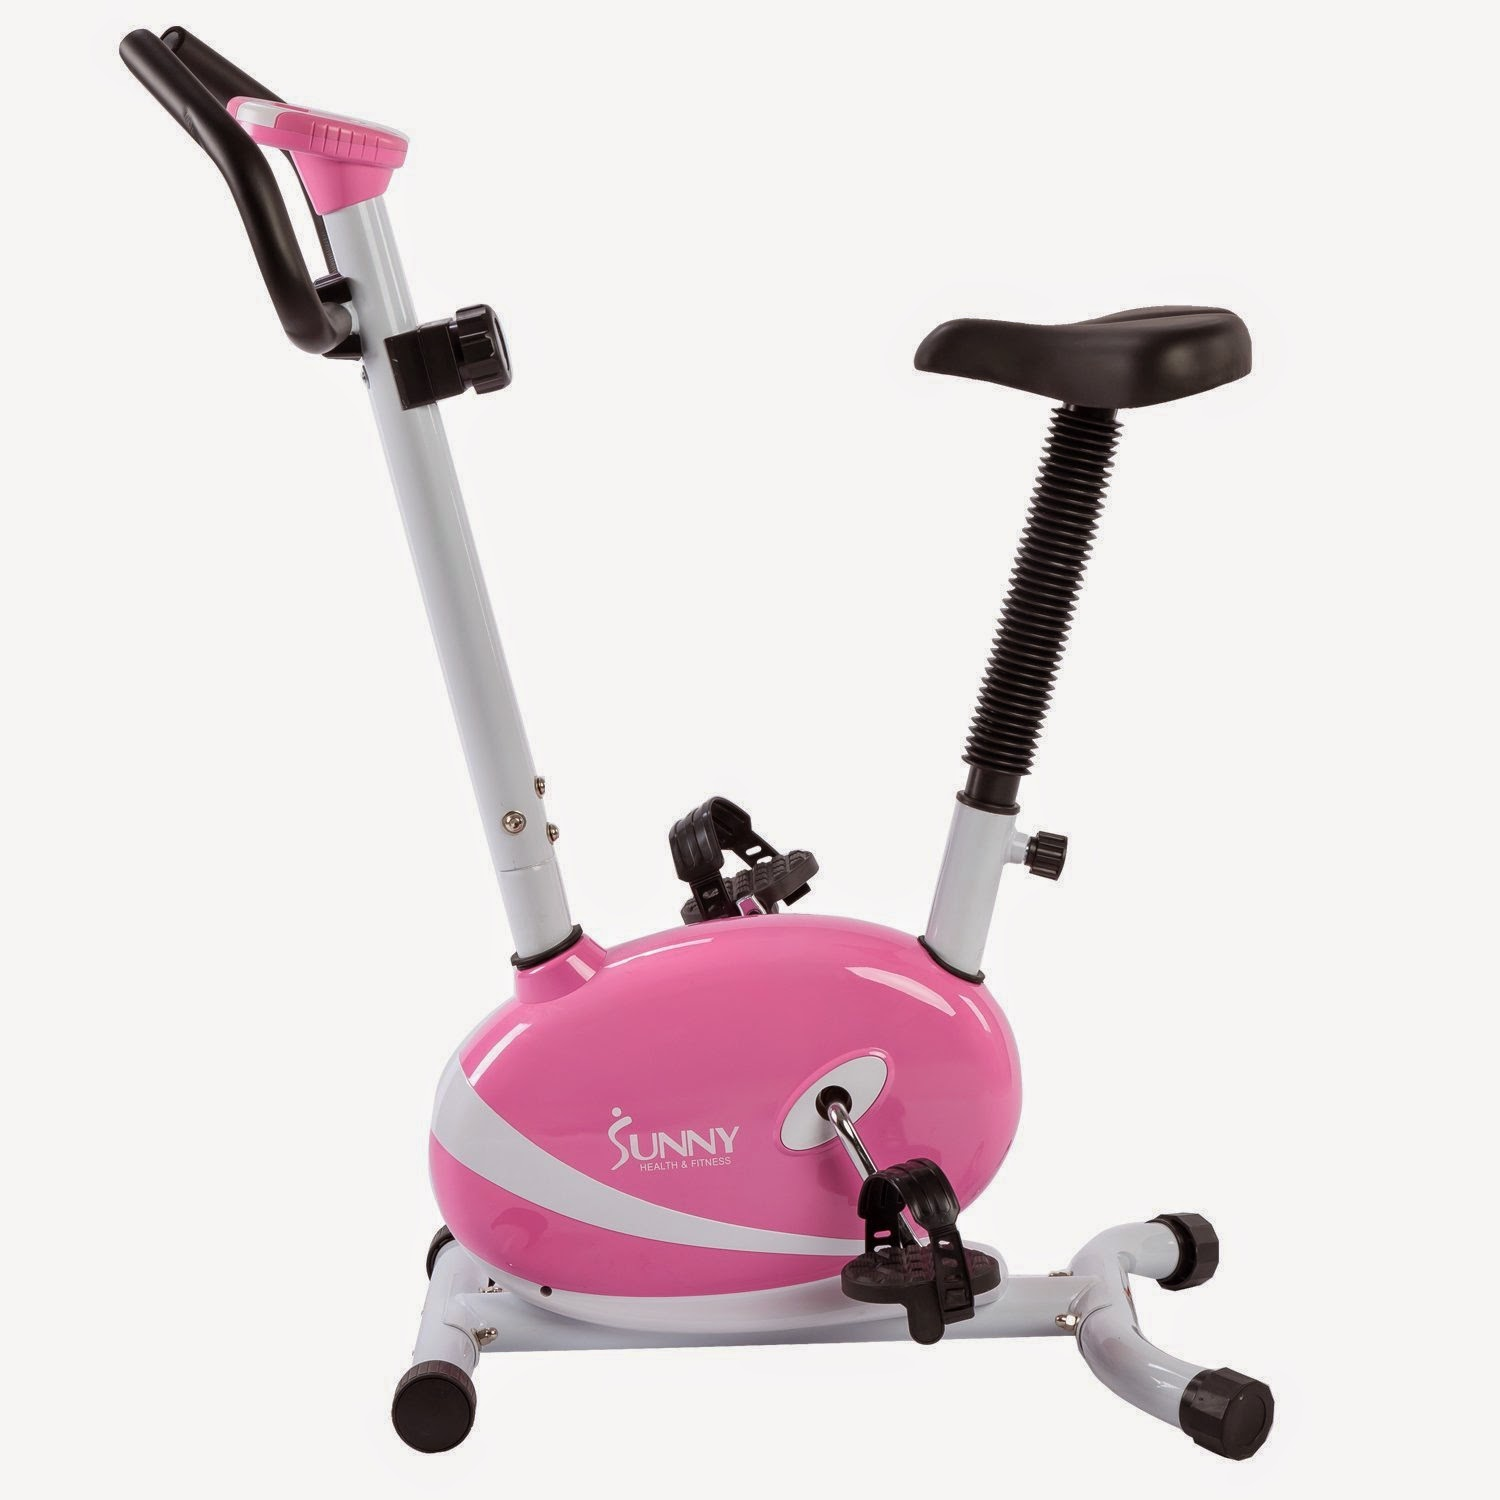 Sunny Health & Fitness Pink Magnetic Upright Bike, review, 8 levels of magnetic resistance